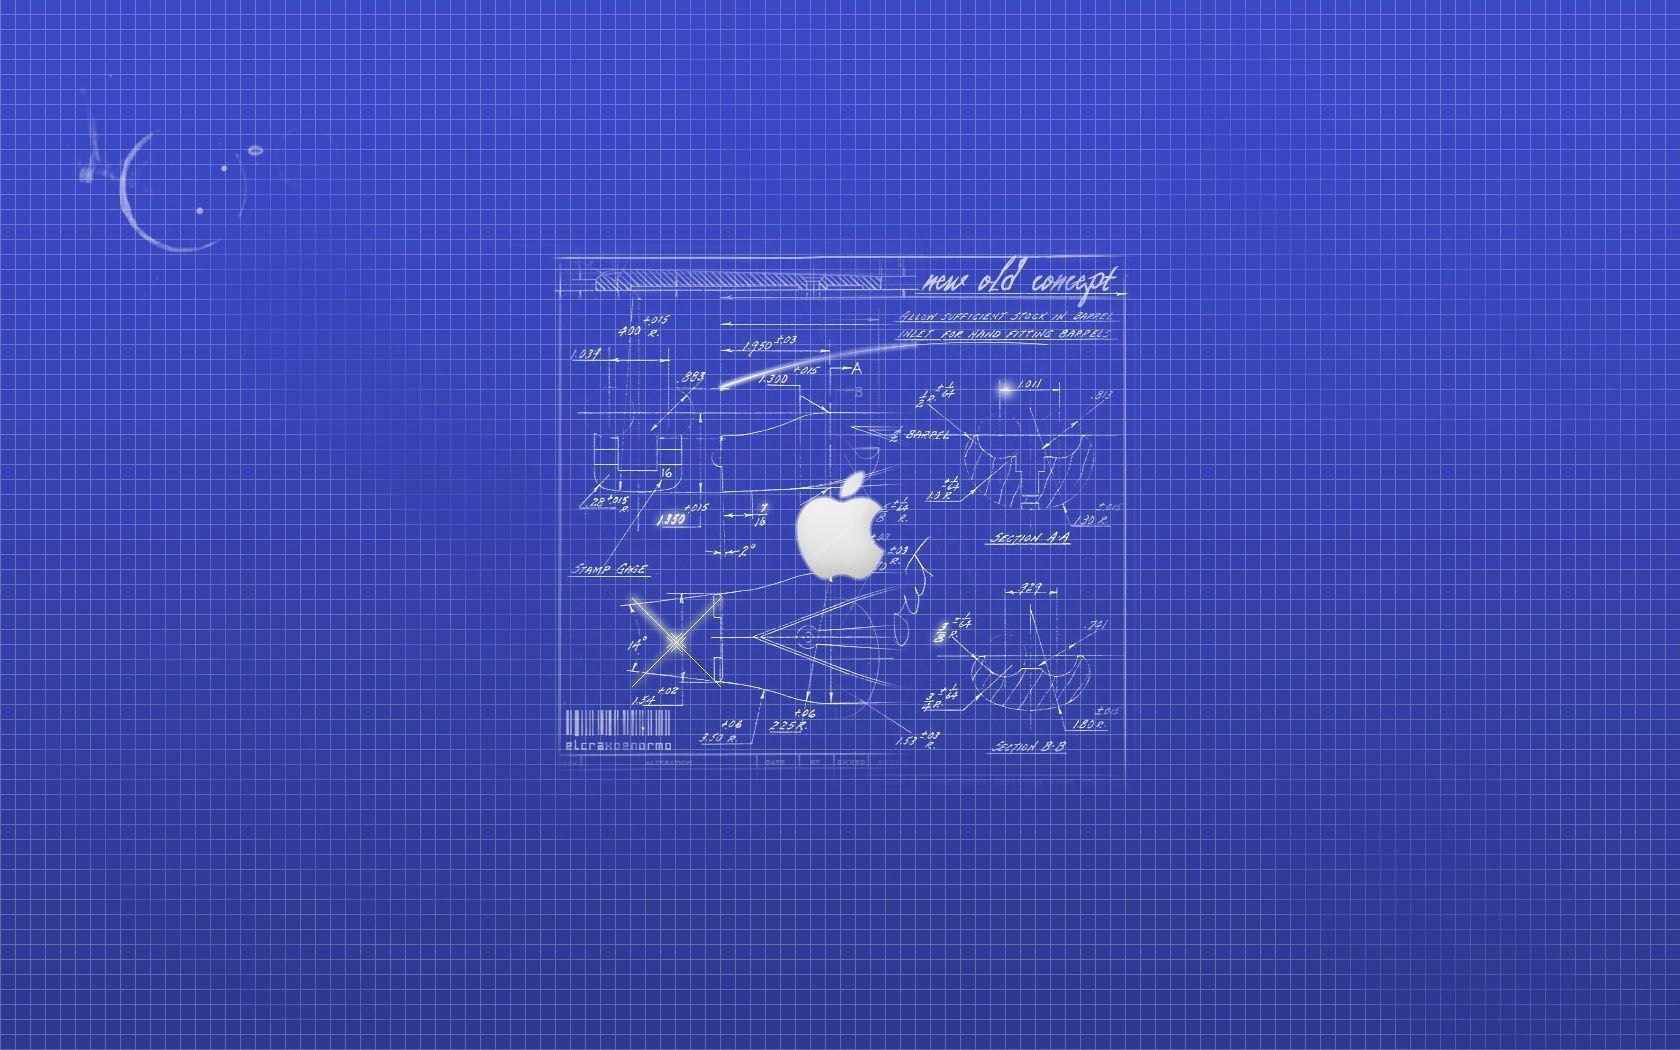 Blue Apple Icon Design Ideas Wallpapers Tiger Mac Os 1680x1050PX